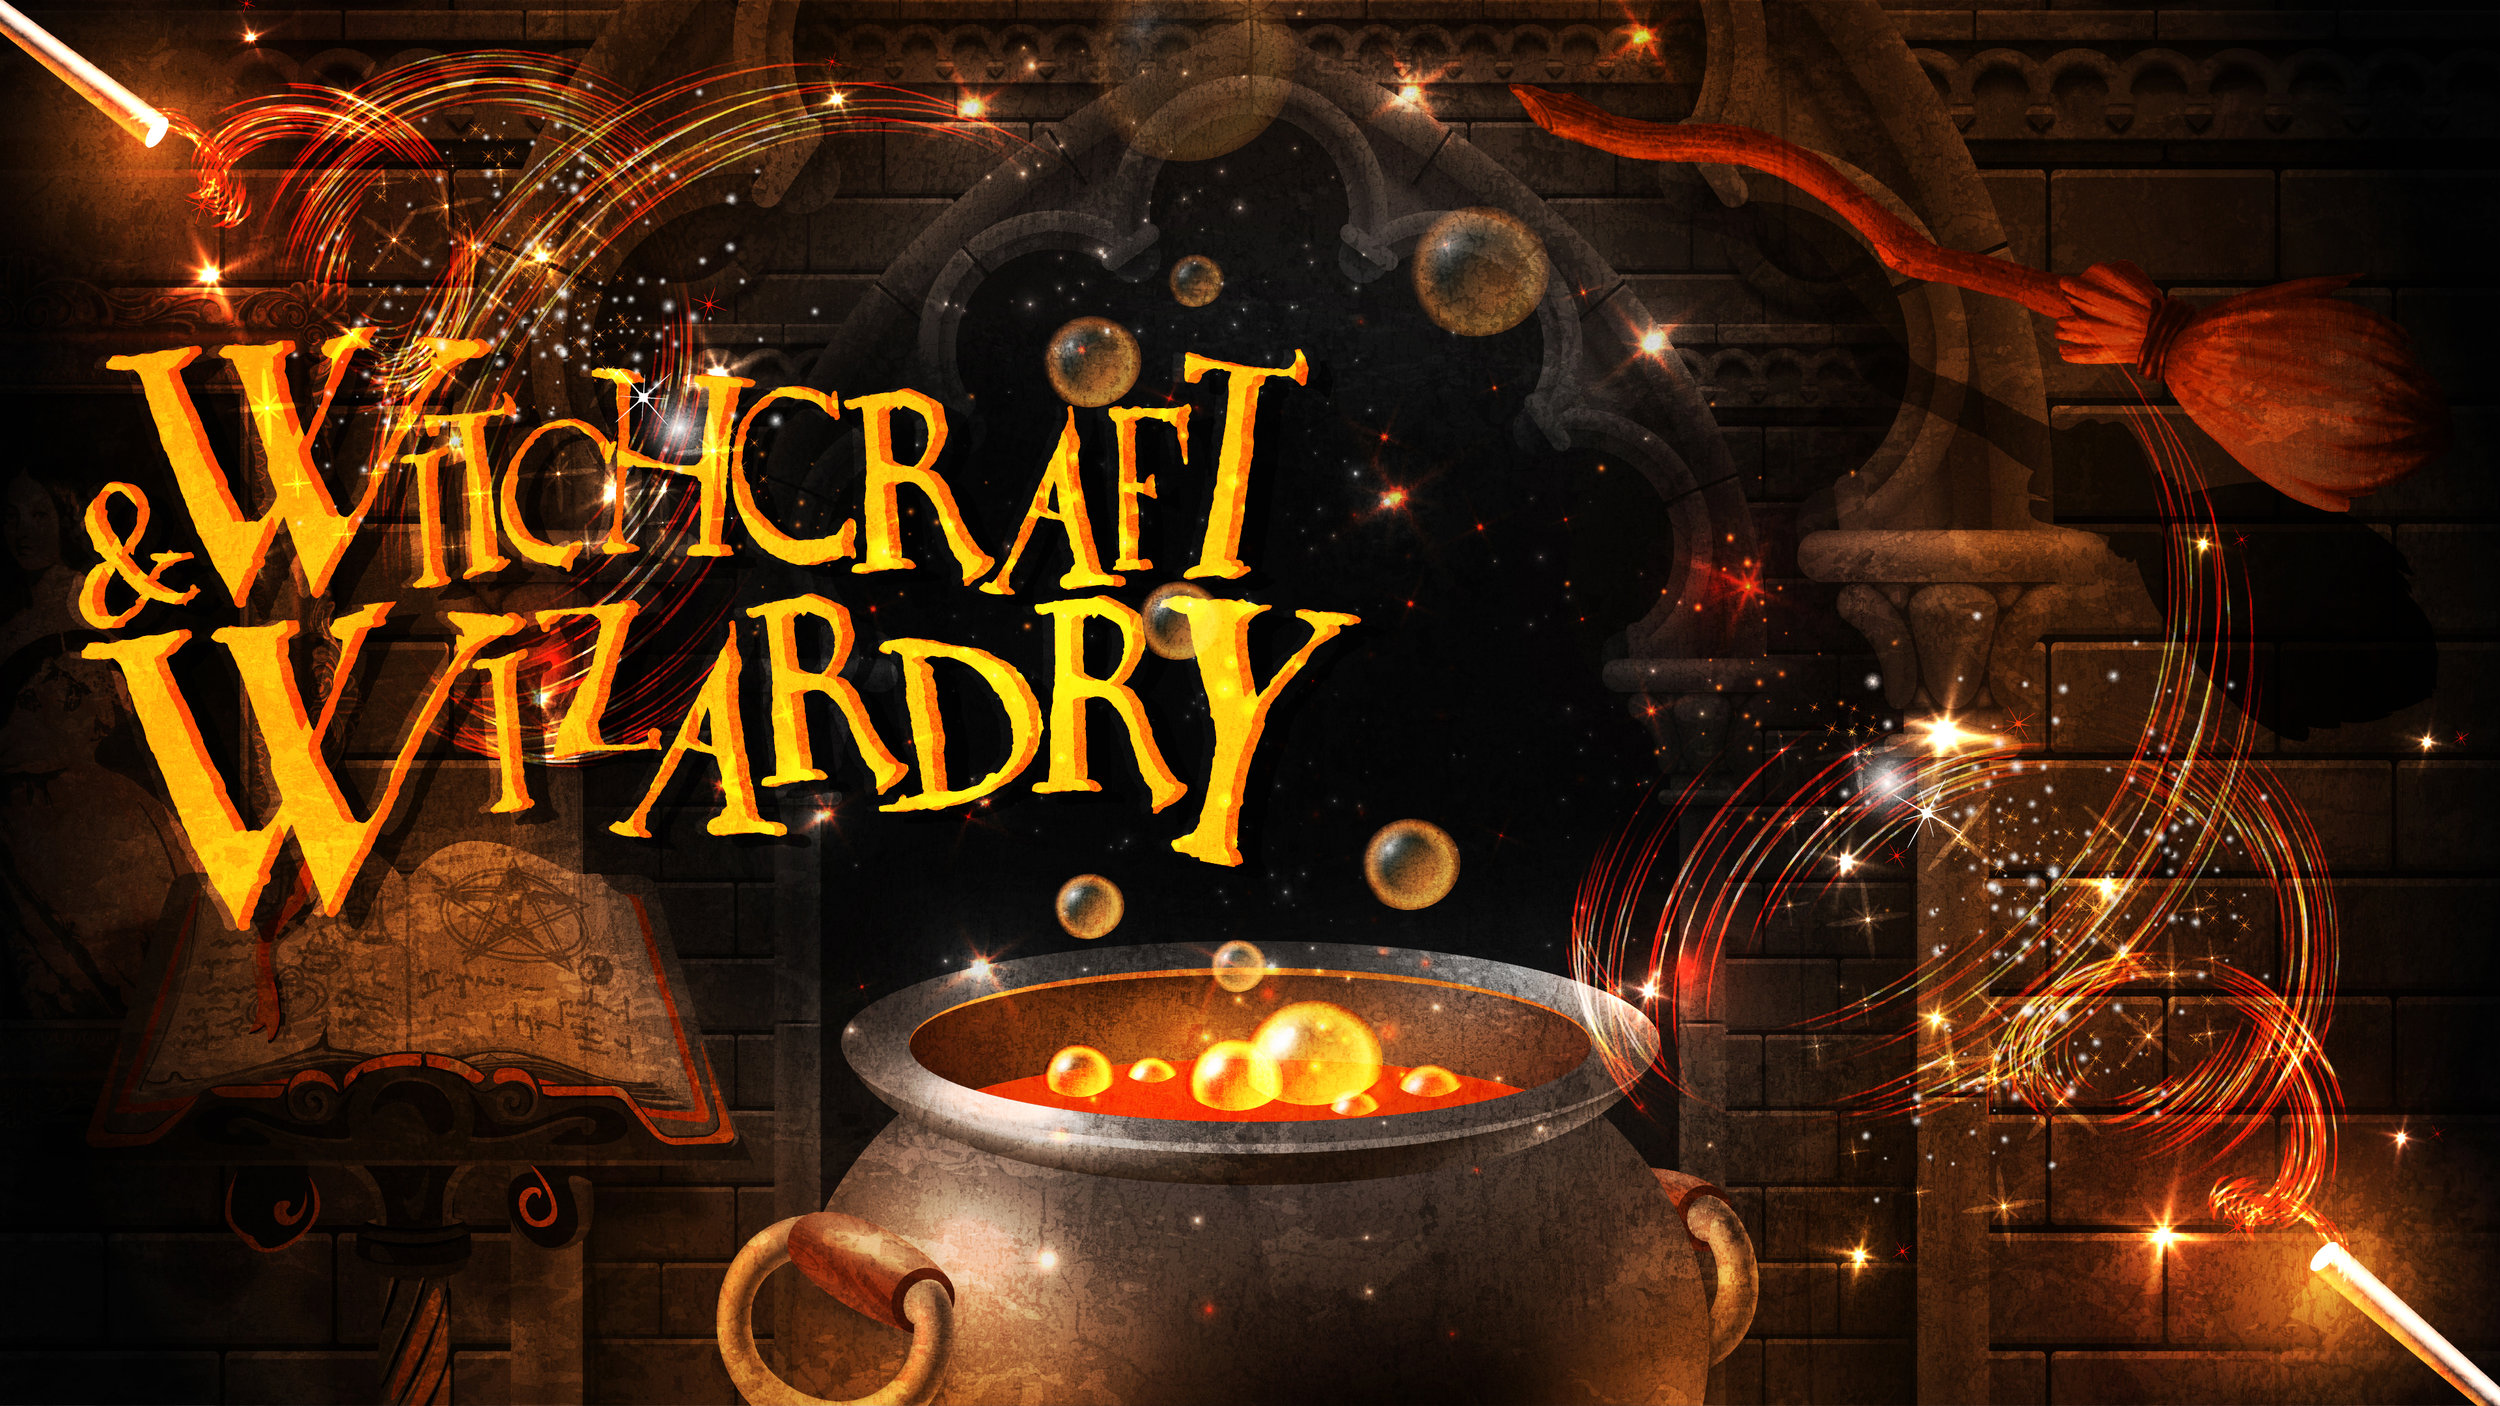 witchcraft & wizardry - Enrolment is just 60 minutes away and some prankster has played a terrible trick on you and hidden your wand. Explore the depths of the castle and find your wand before the school bell rings.